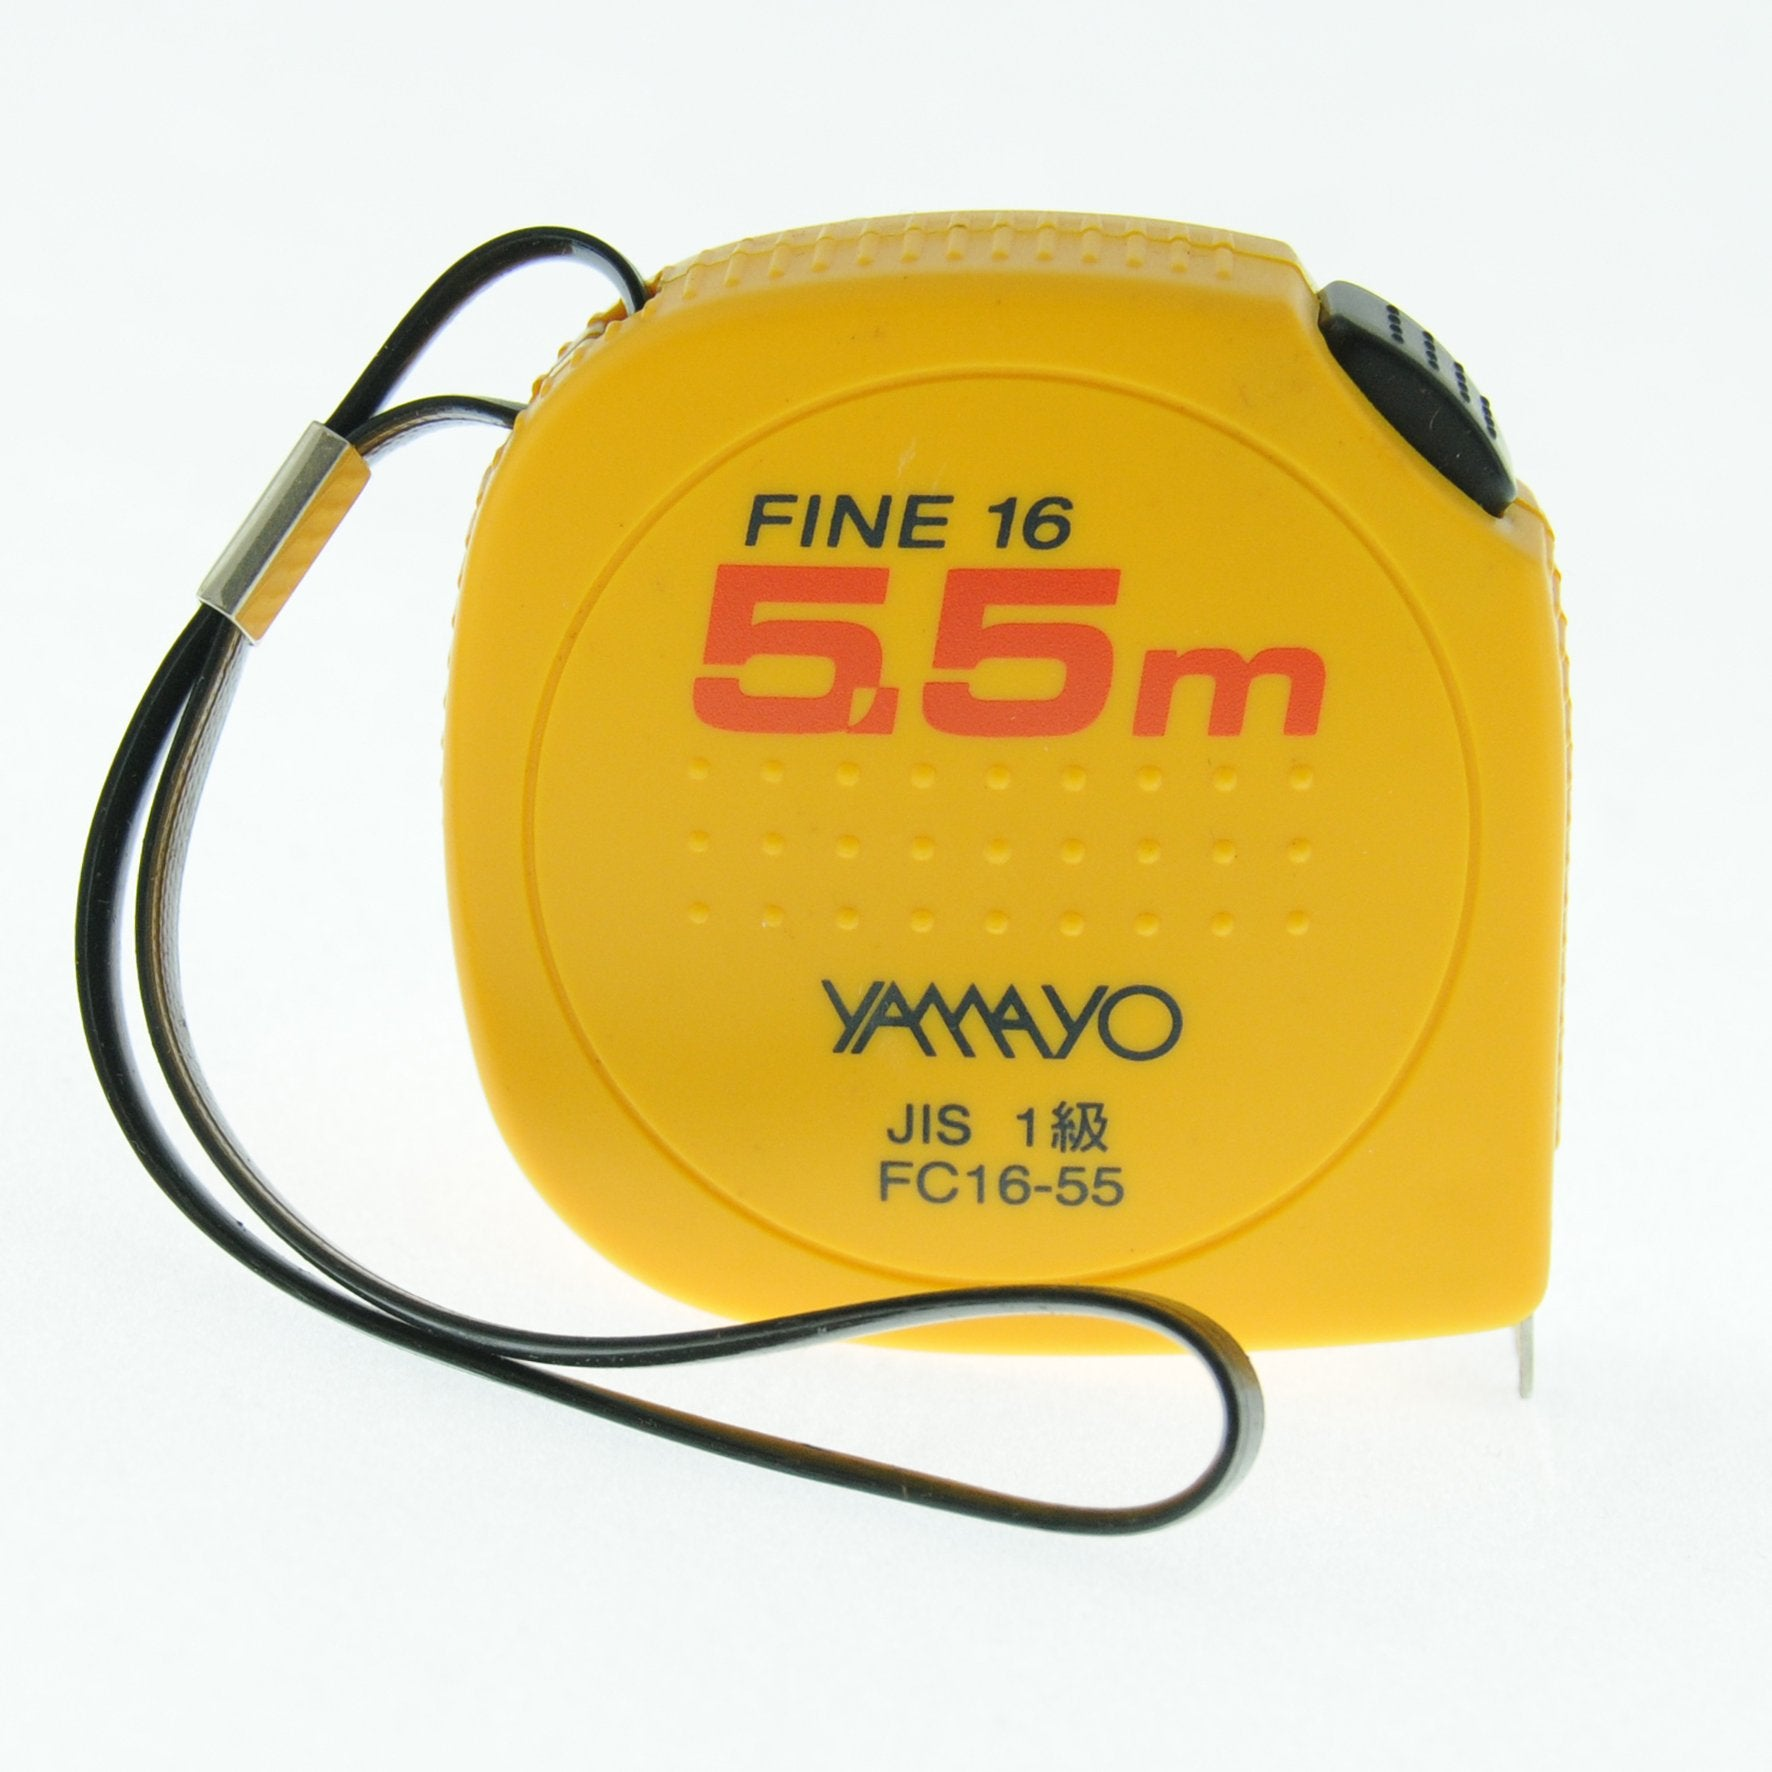 5.5 metre X 16mm Yamayo Fine 16 Convex Free Return Steel Pocket Measuring Tape with Acrylic Resin